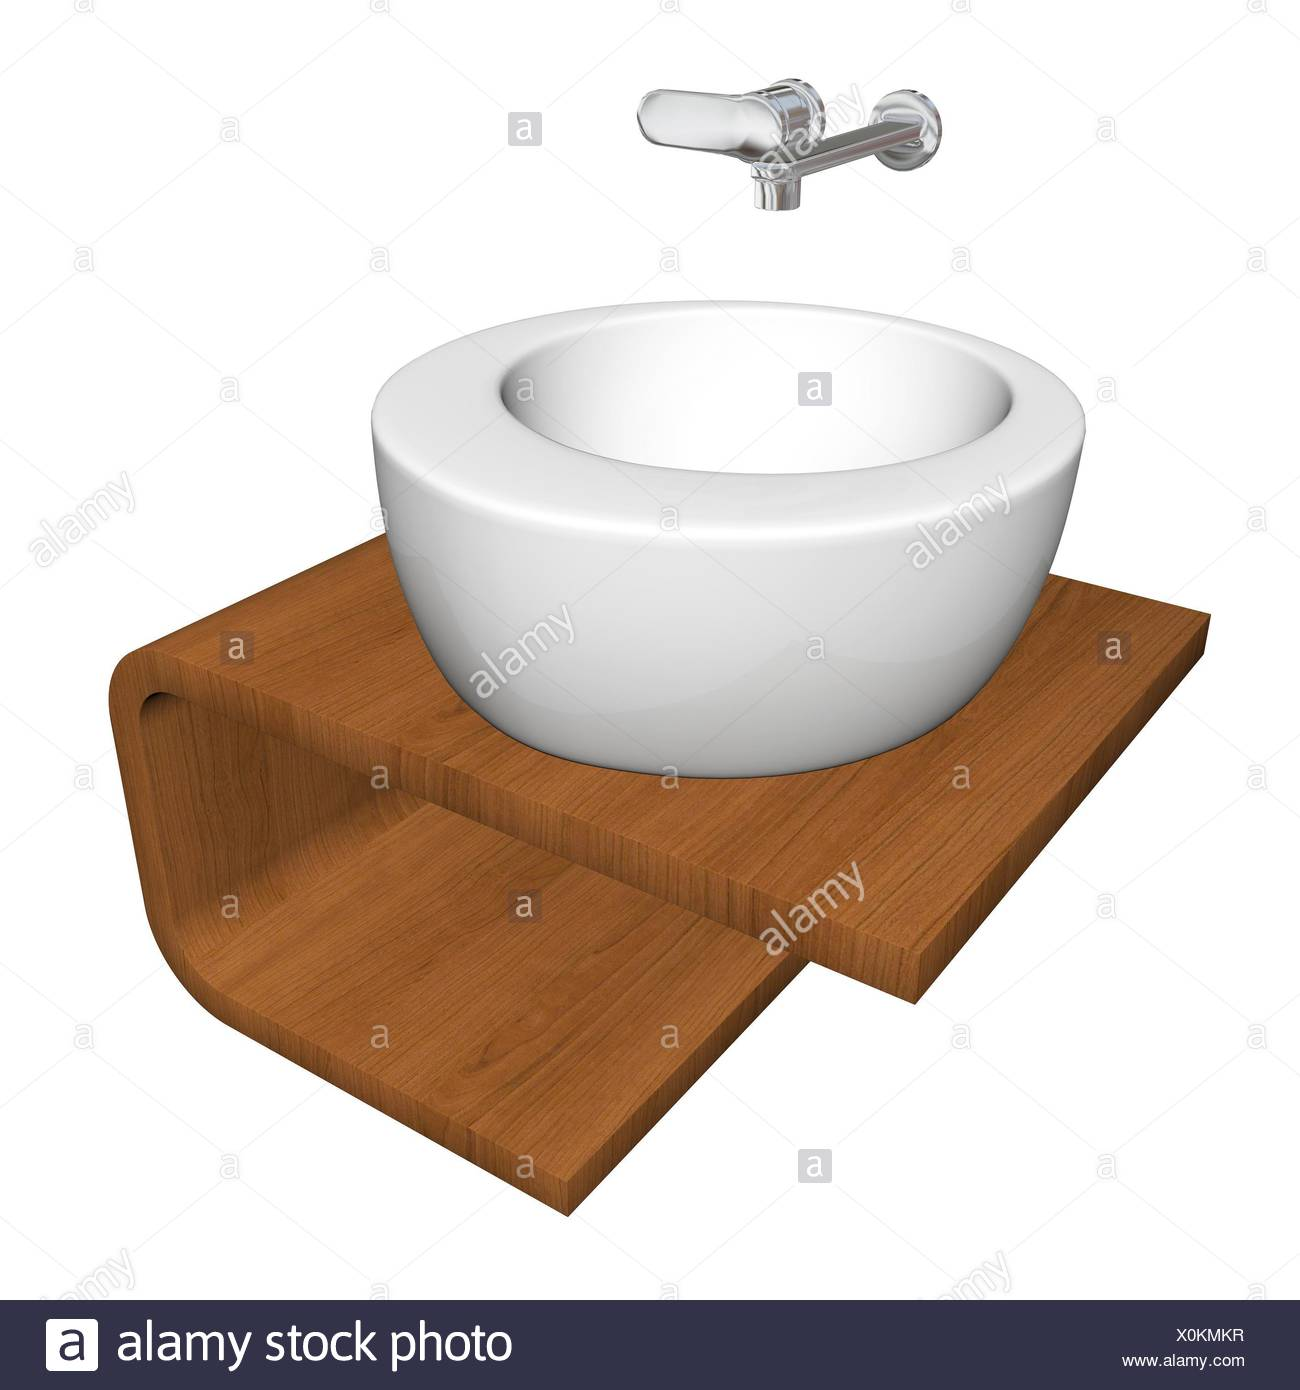 Modern bathroom sink set with ceramic or acrylic wash bowl, chrome fixtures, and wooden base, 3d illustration, isolated against a white background - Stock Image